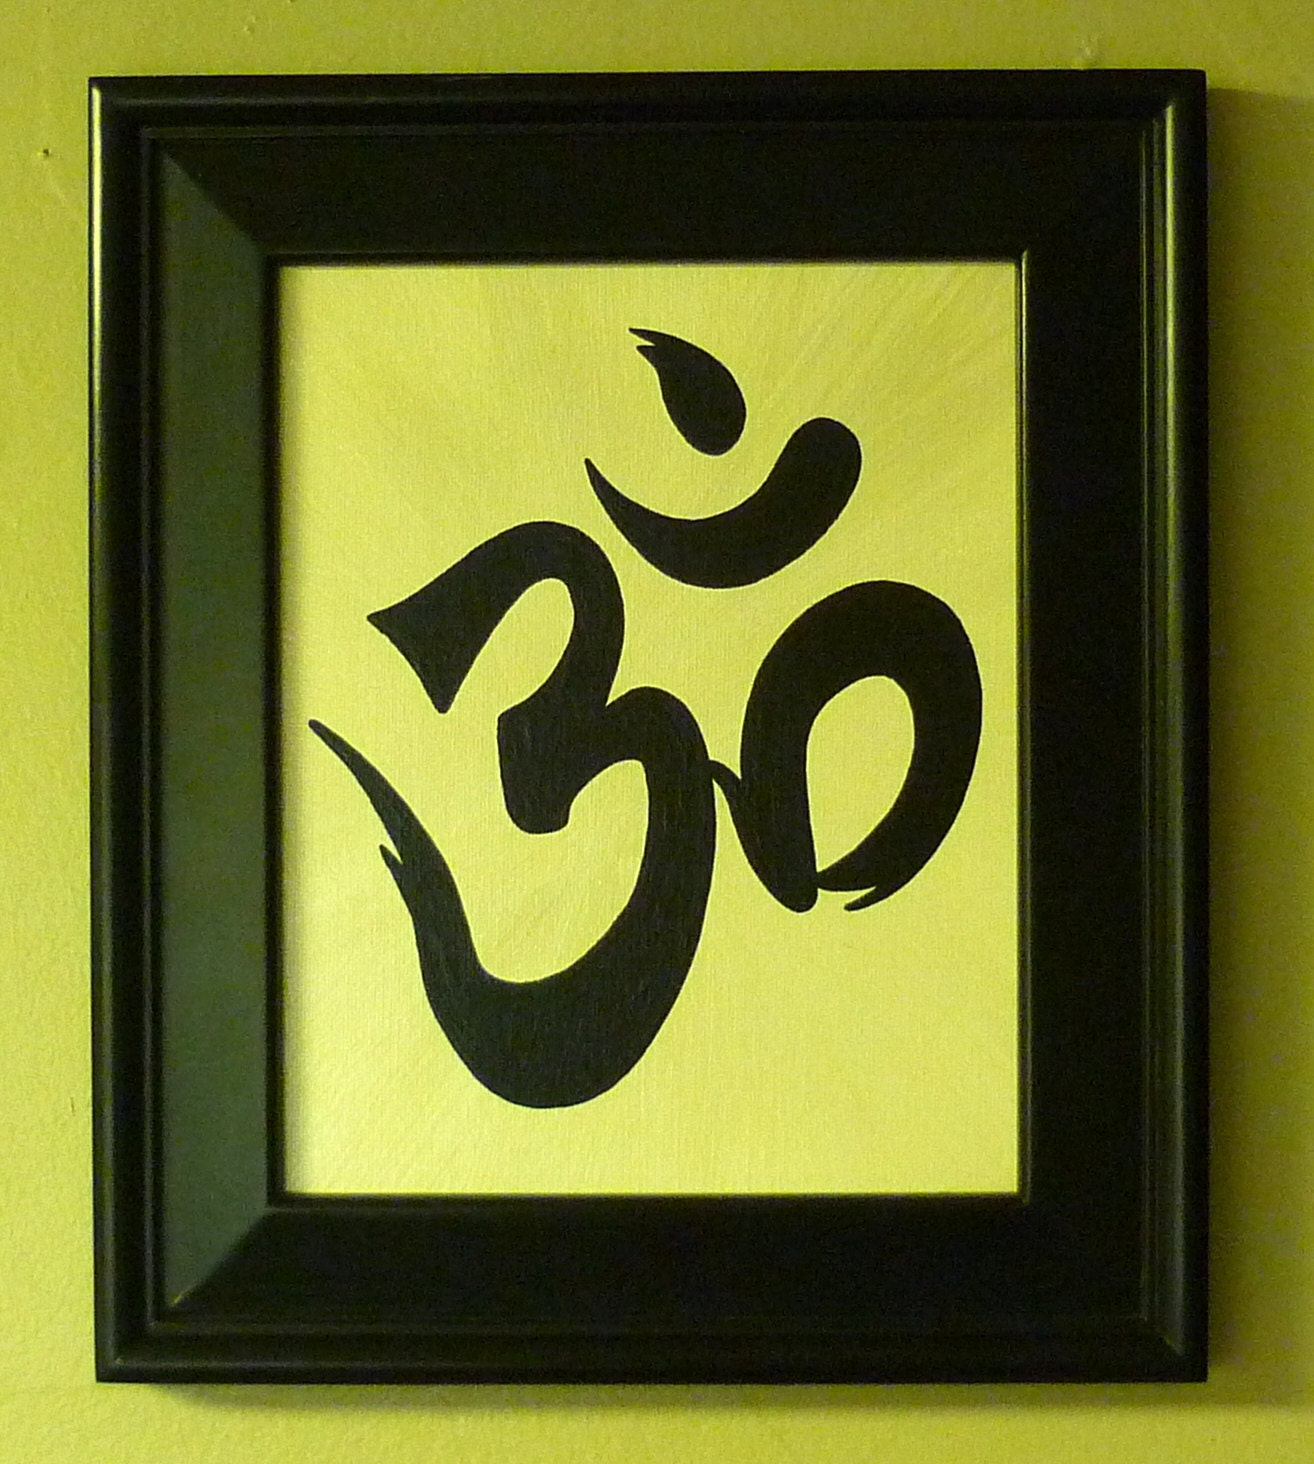 OM Yoga Zen Buddhist Symbol for Meditation by asianartrhrussell